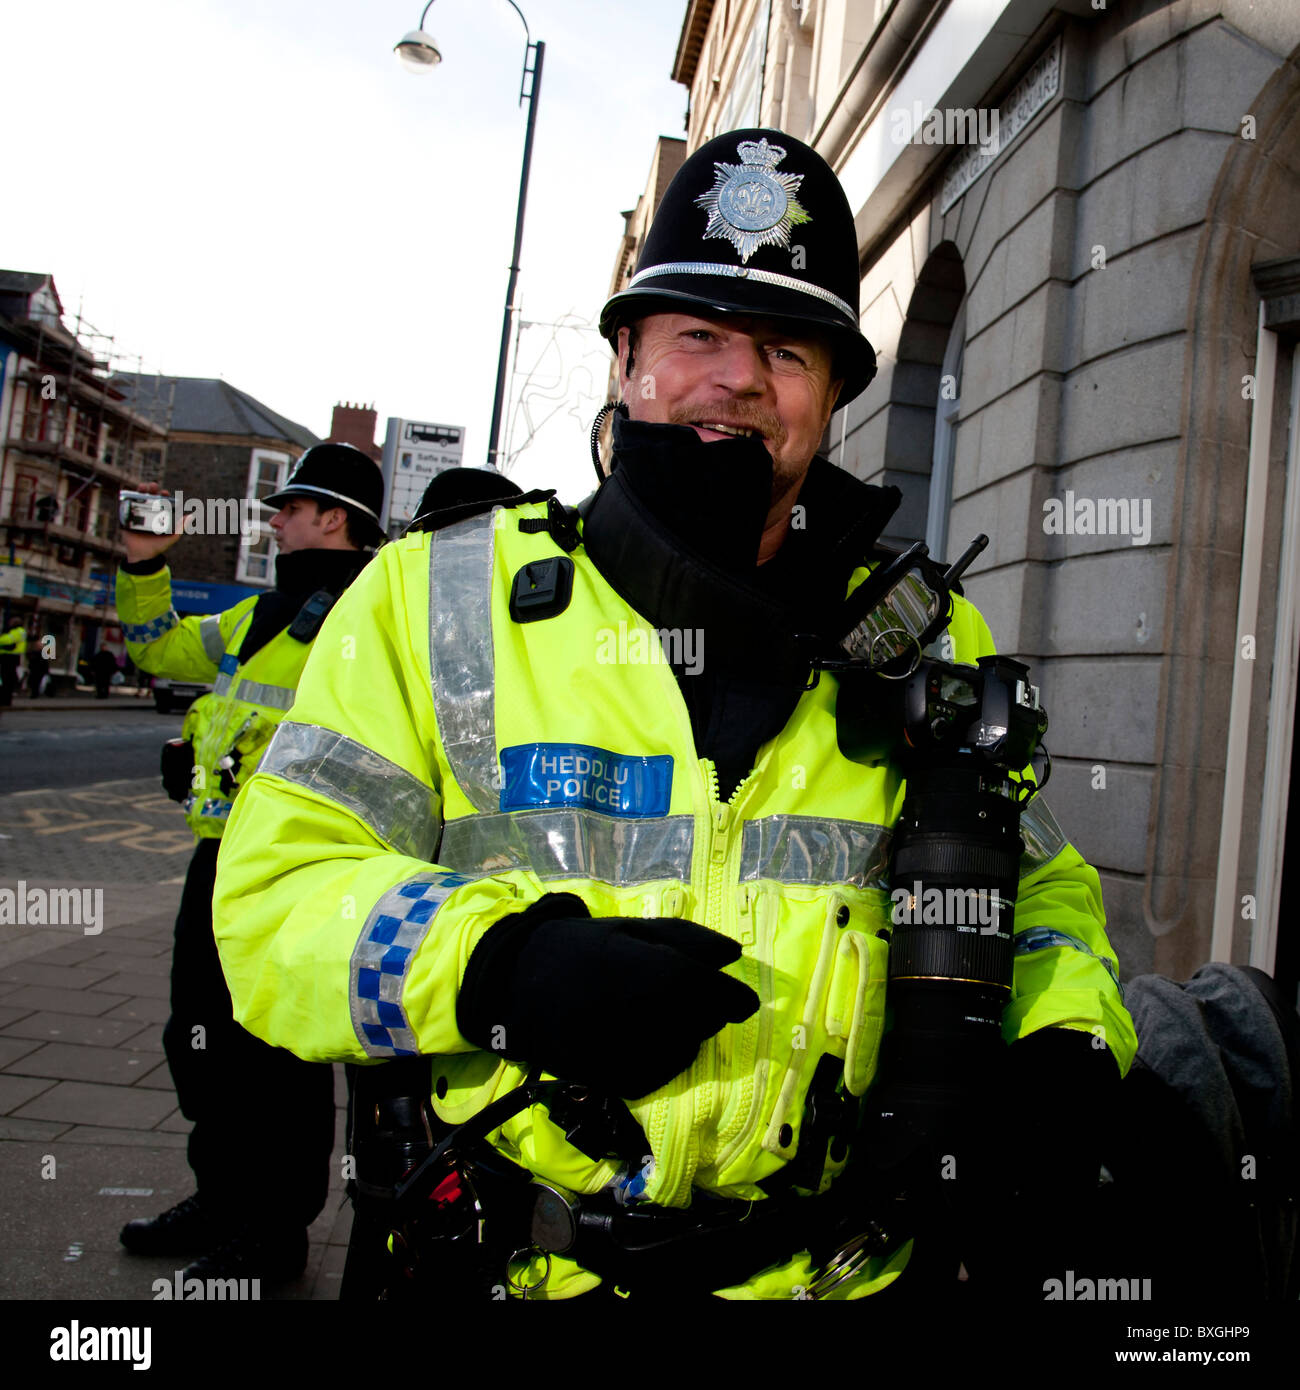 Police FIT forward intelligent team officers at student protest against education cuts, Aberystwyth Wales UK - Stock Image